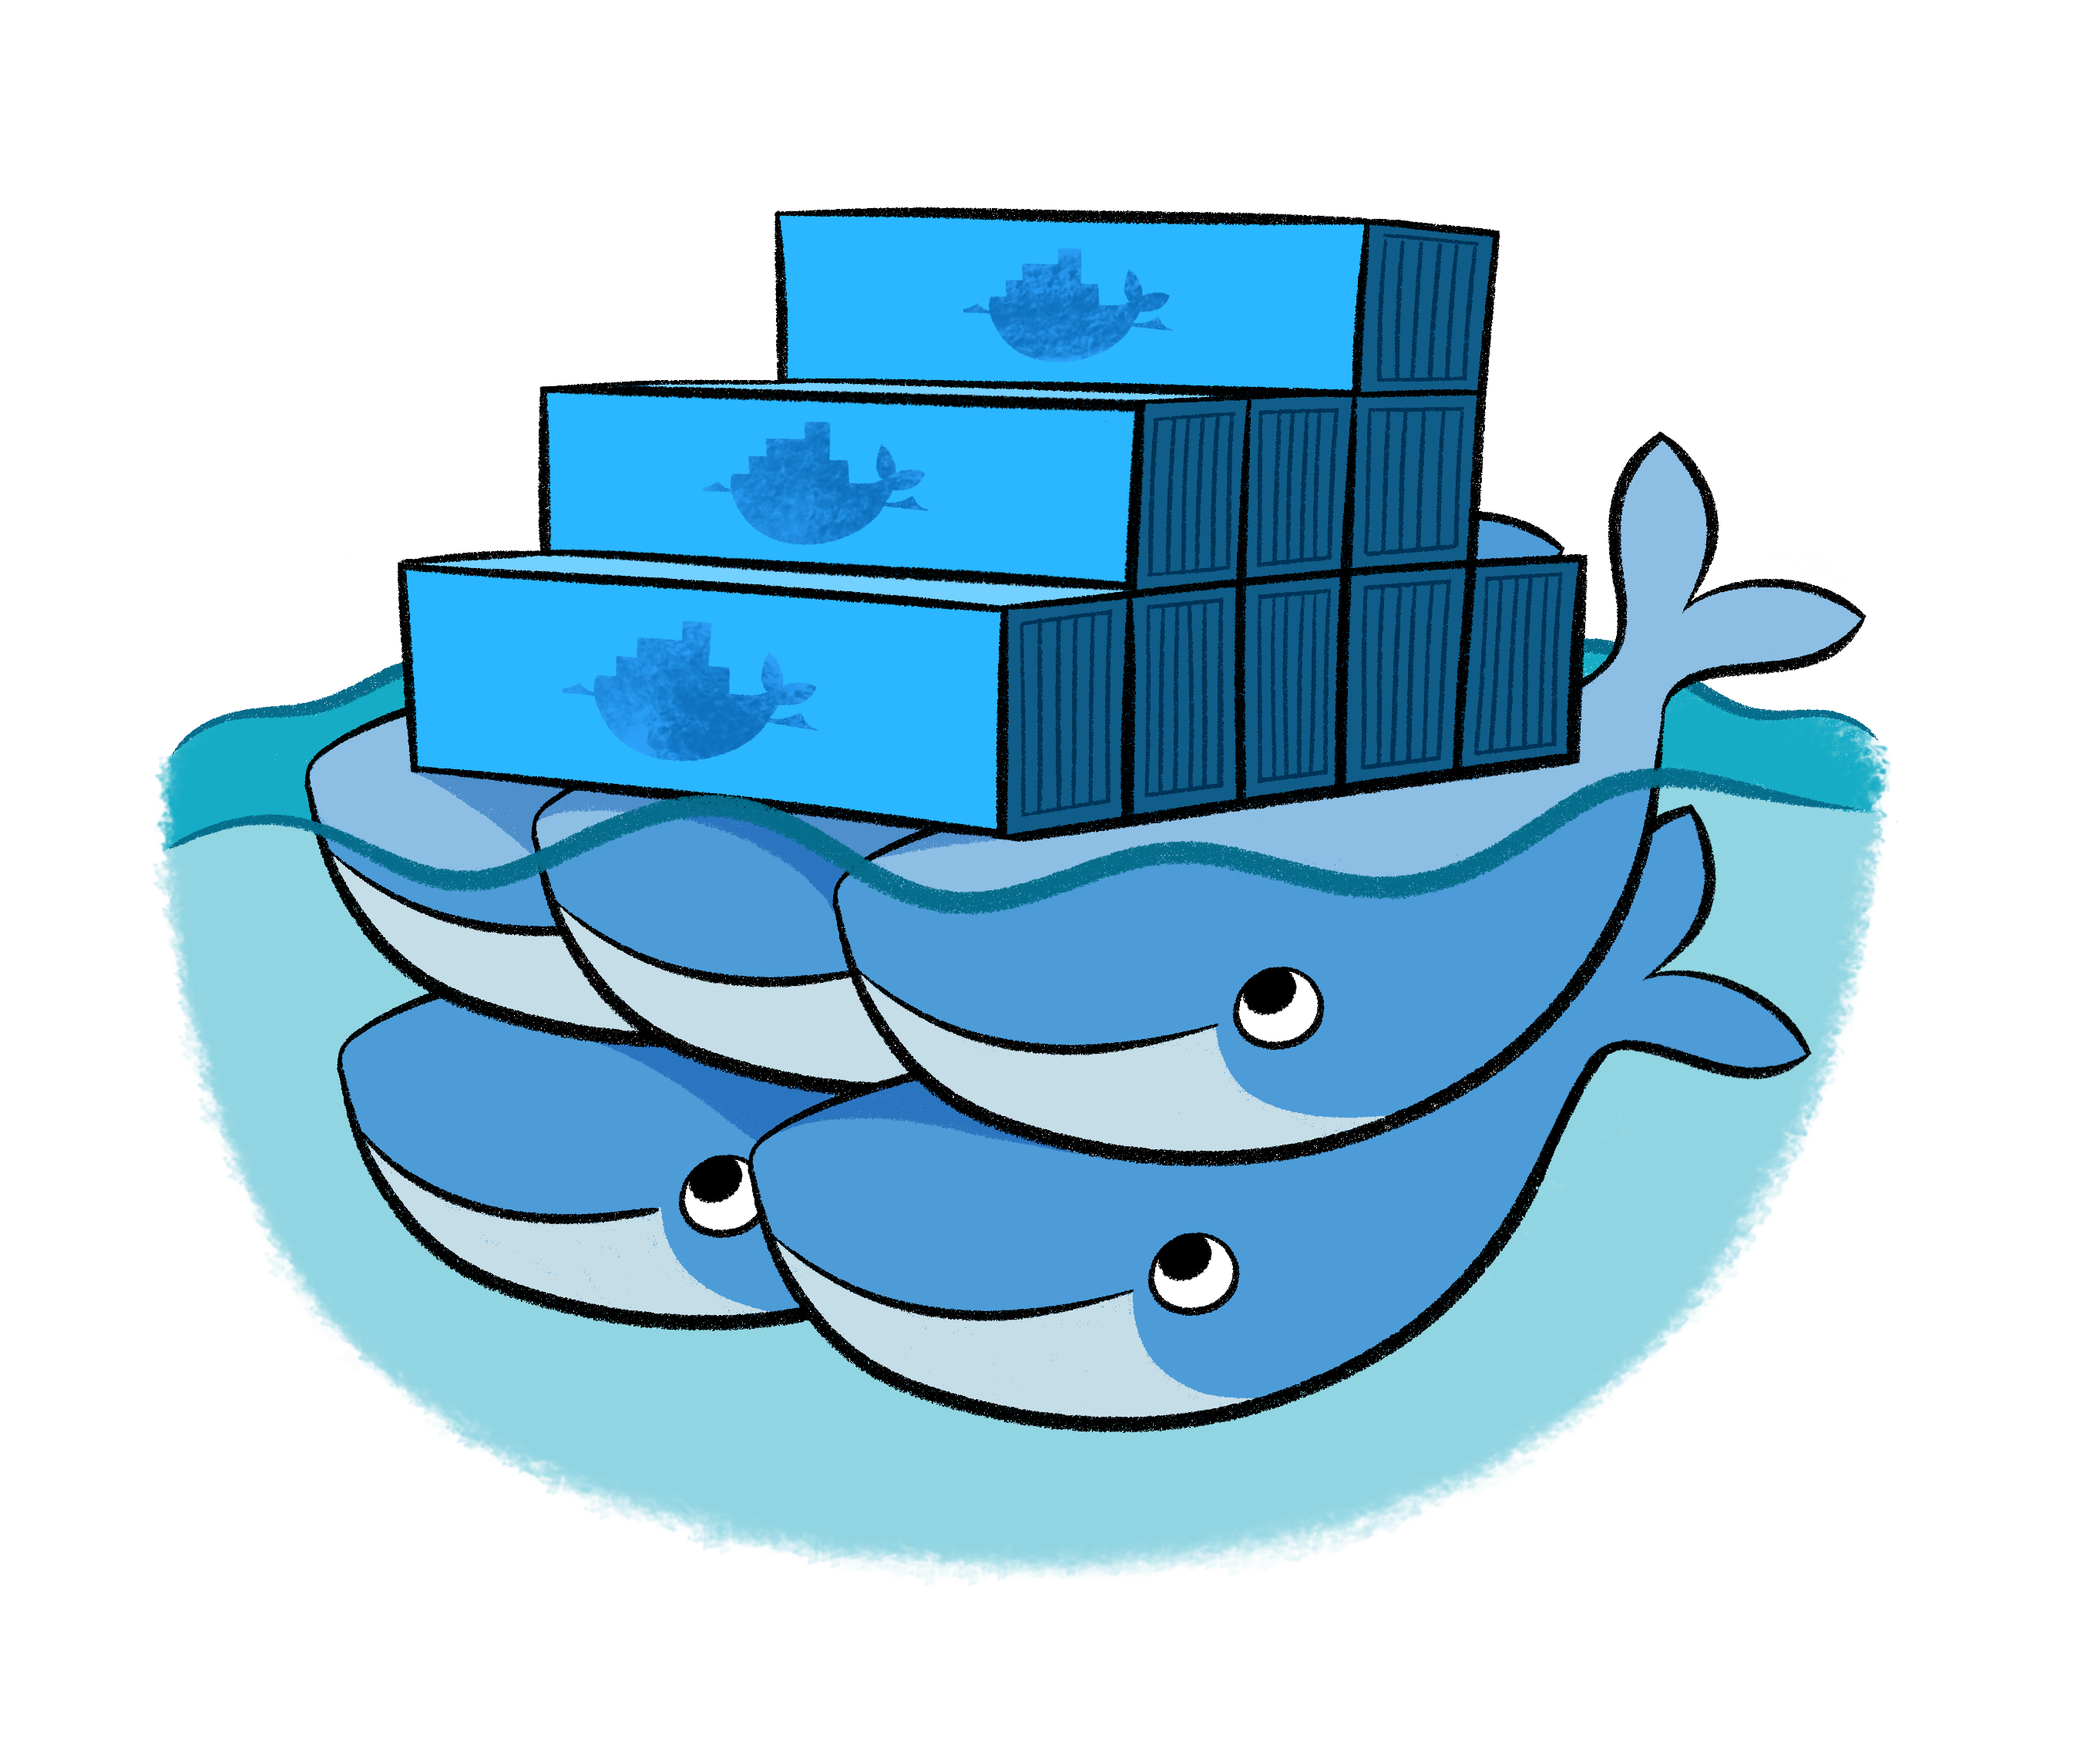 D2SI_Blog_Image_DockerWhales